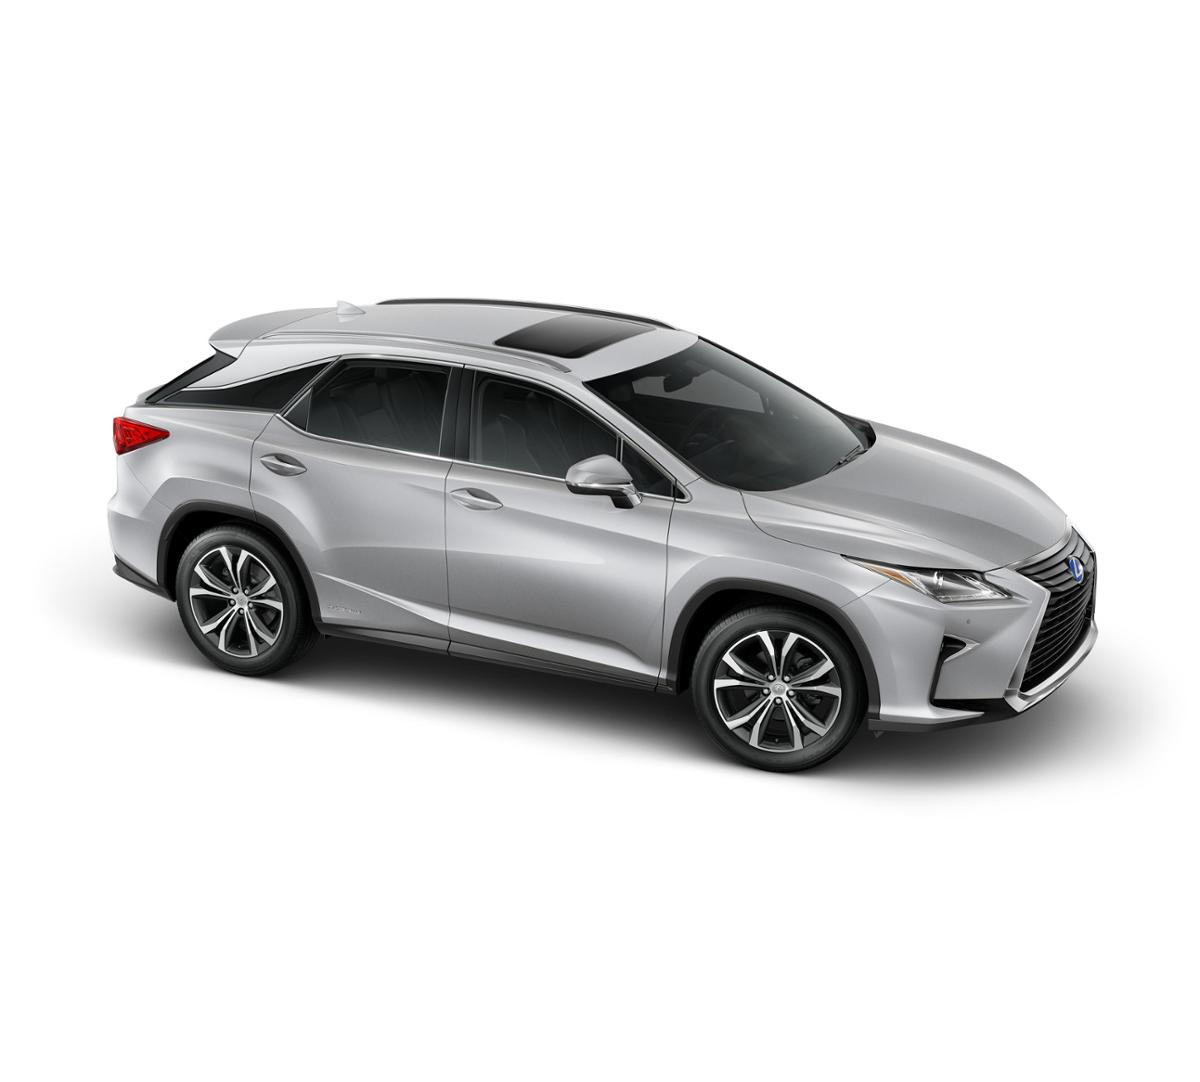 2019 Lexus Rx Hybrid: Freehold Silver Lining Metallic 2019 Lexus RX 450h New For